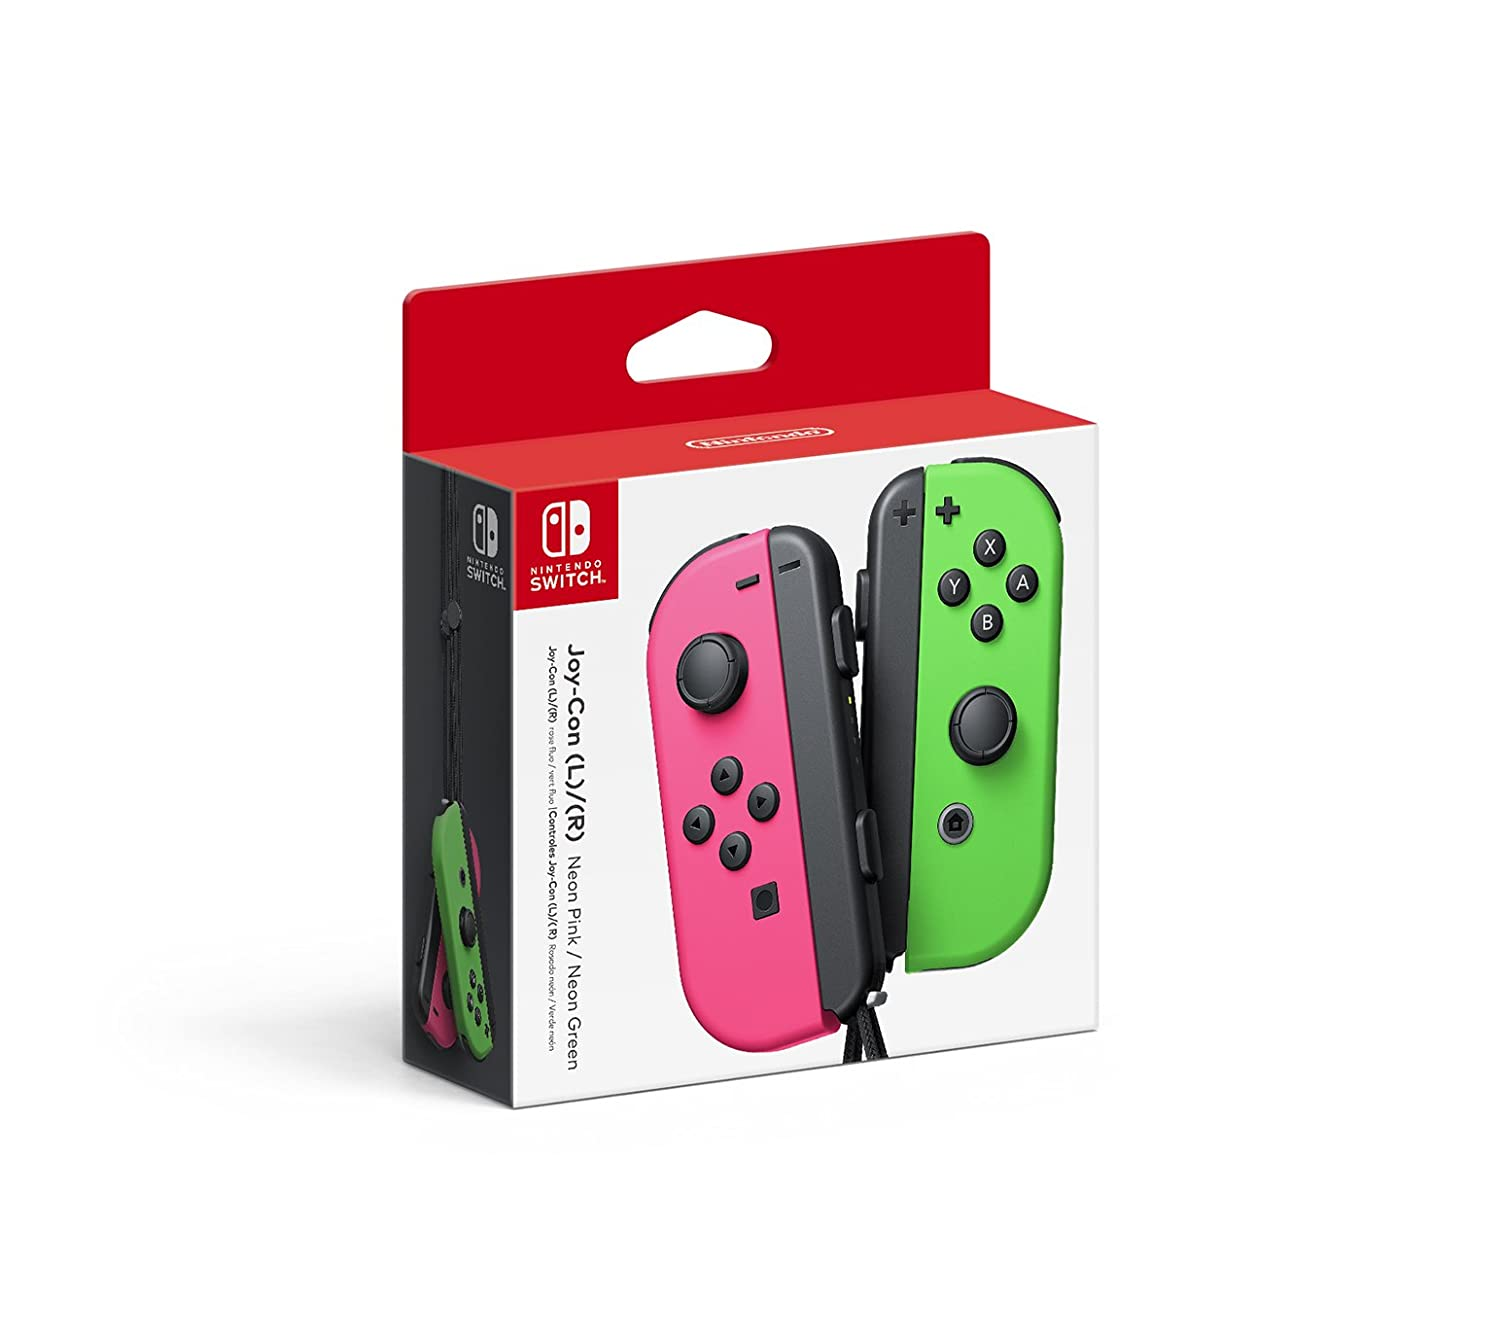 A pair of Joy-Con controllers in bright green and pink.